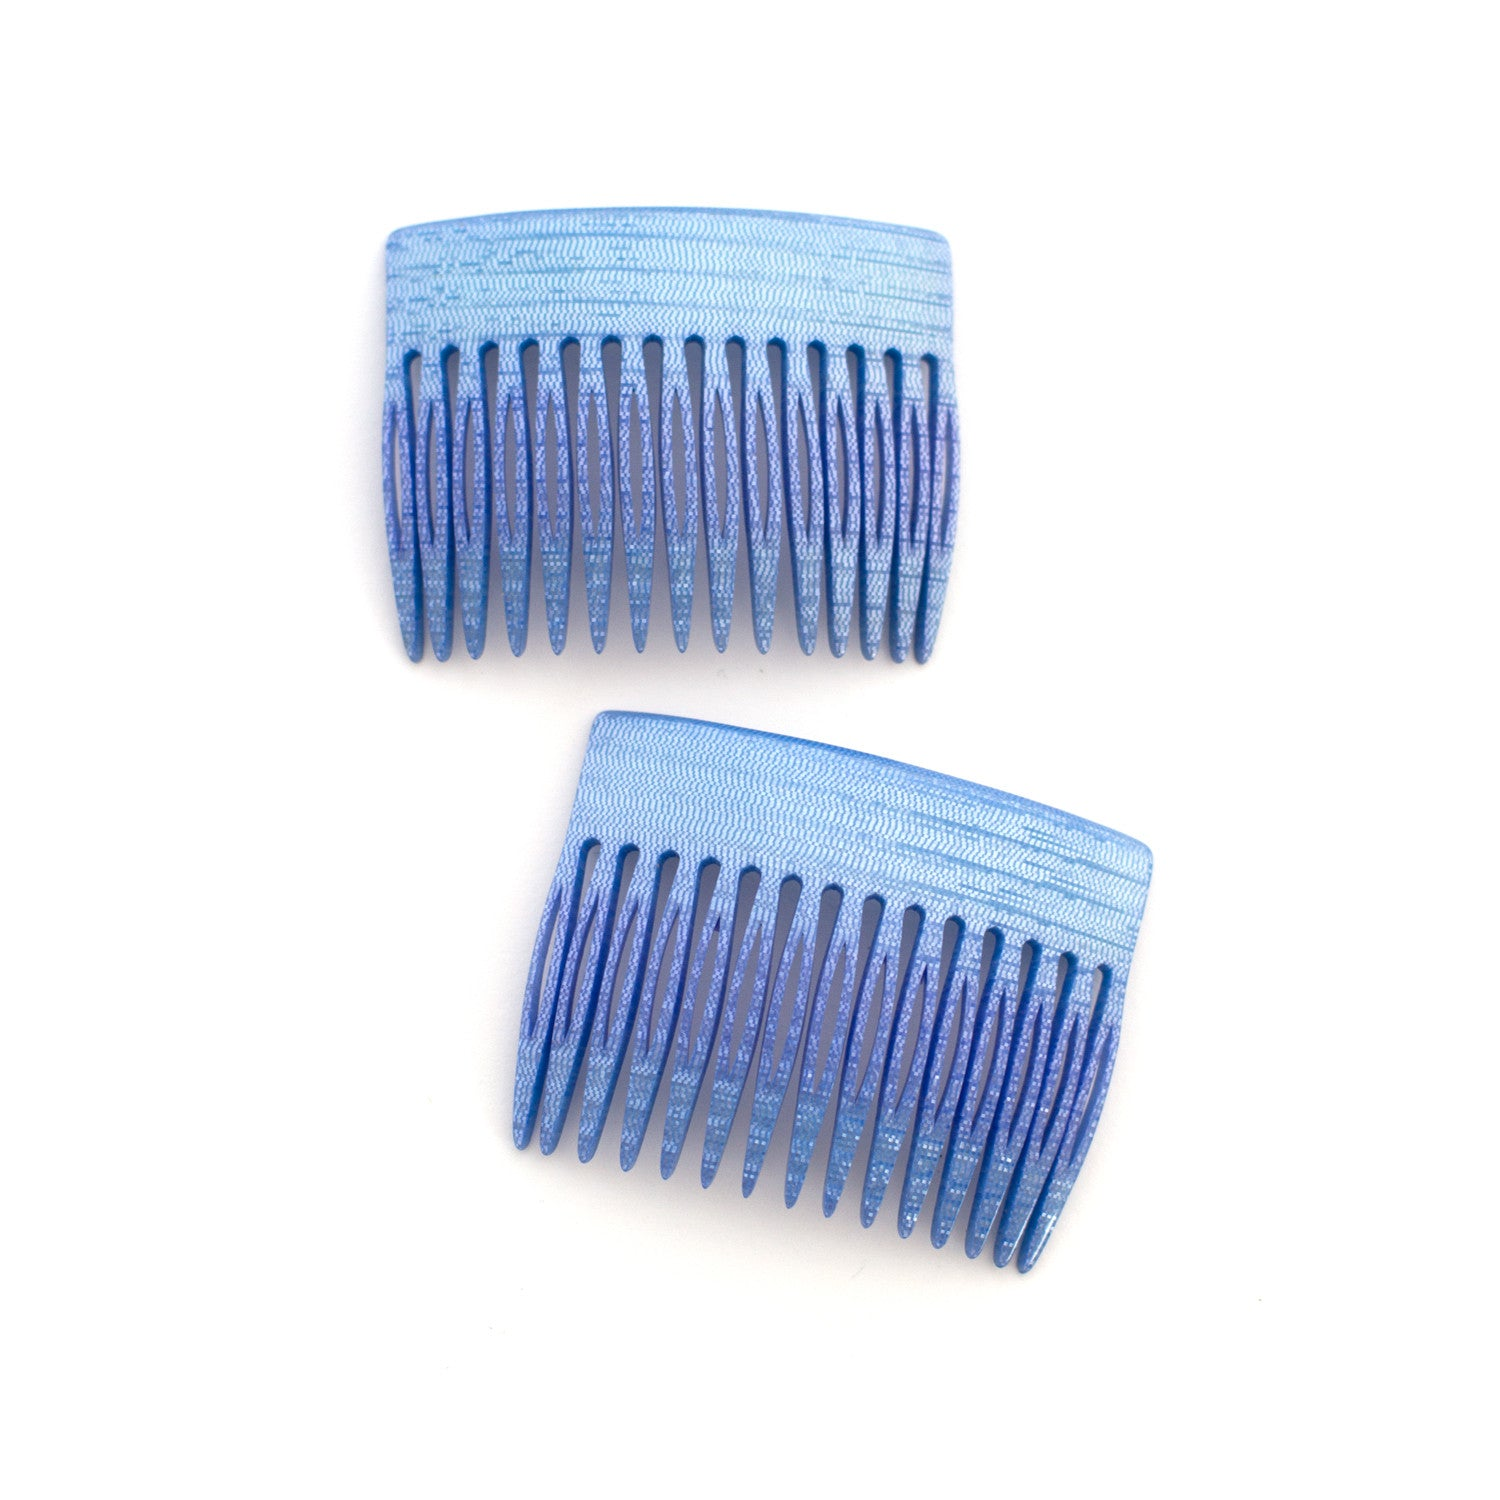 shimmery blue vintage combs made in france